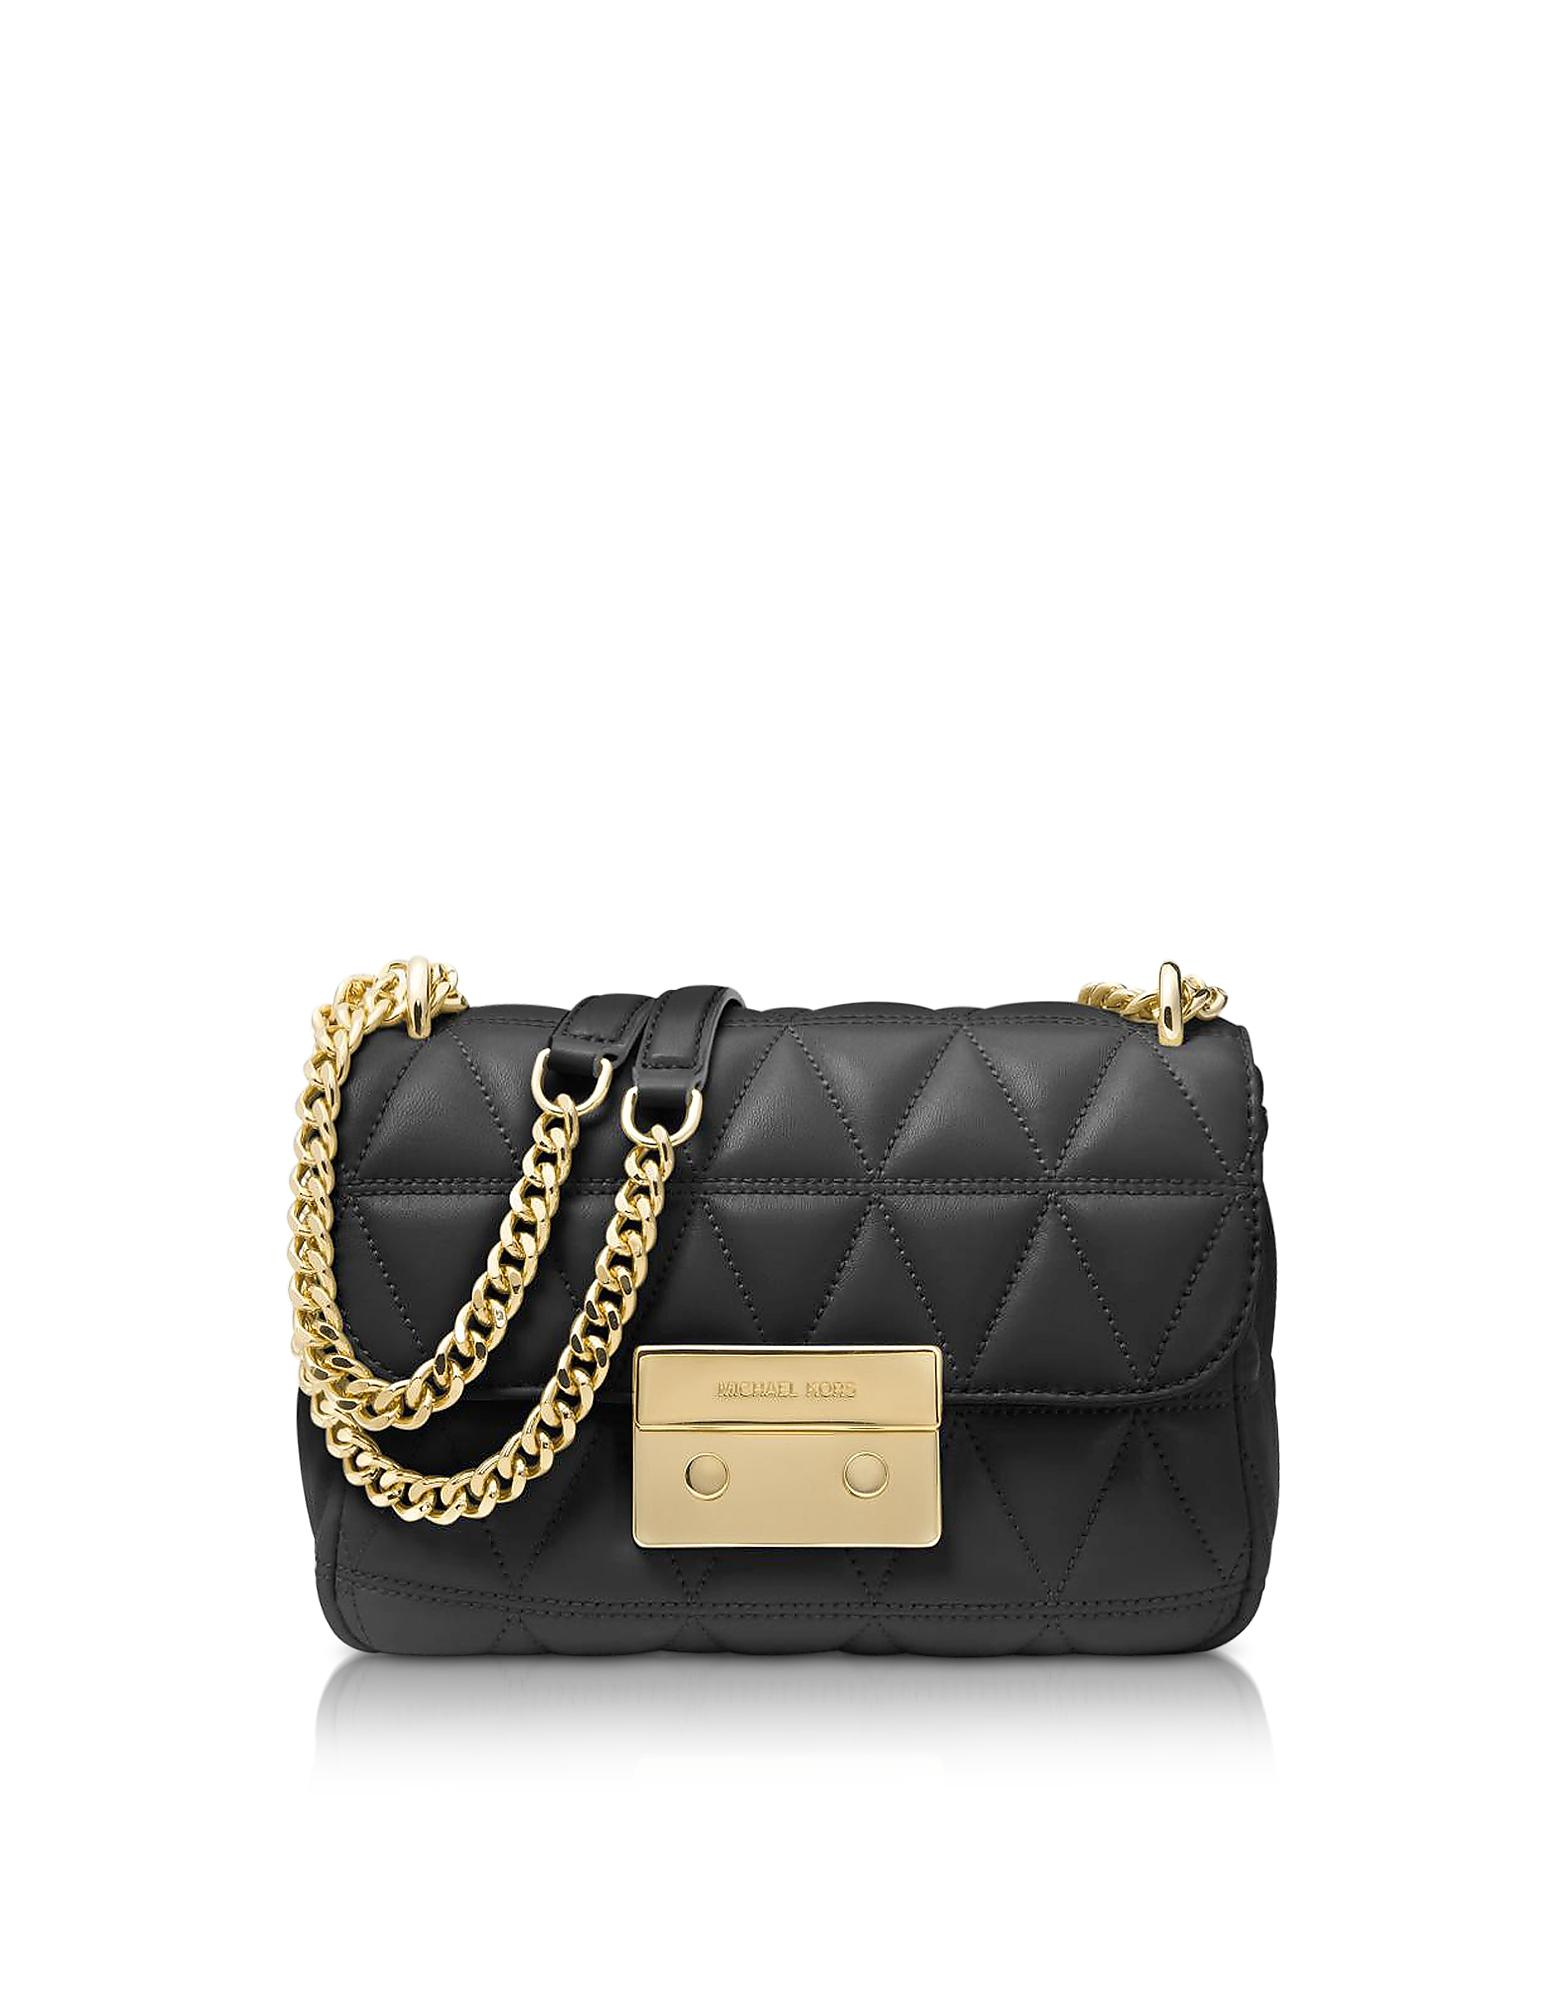 02cdfc0cda91 Michael Kors Sloan Small Black Quilted Leather Shoulder Bag | ModeSens